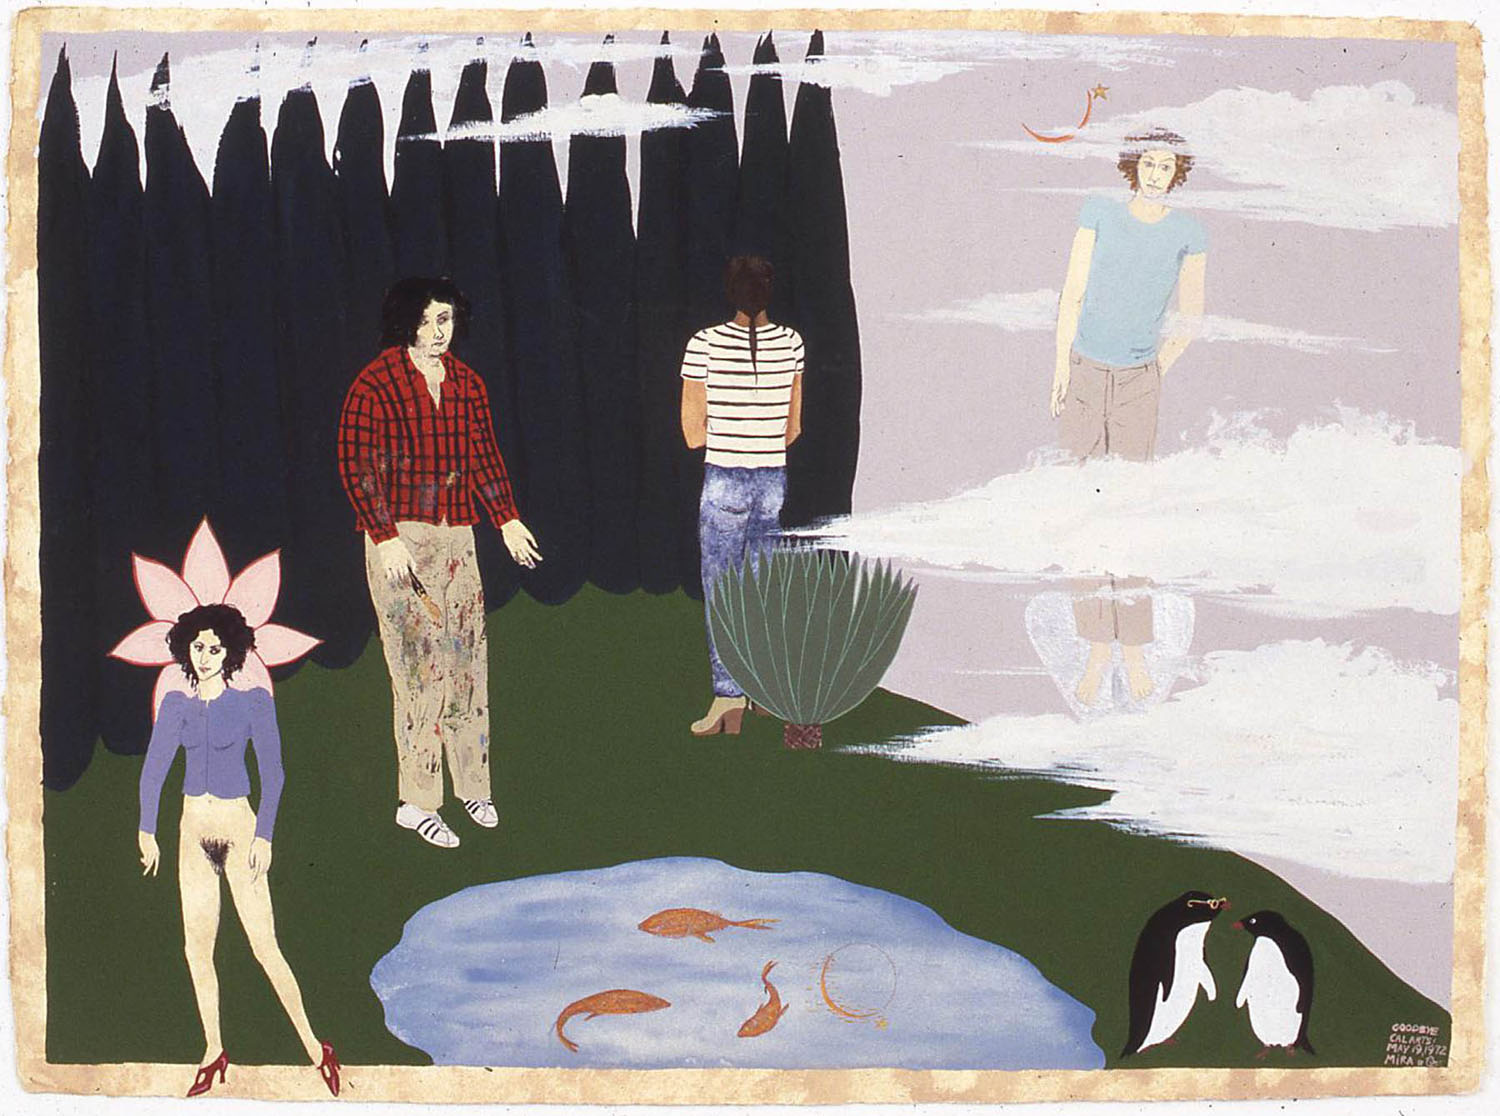 Mira Schor   Goodbye CalArts , May 19, 1972  Gouache on paper  21.5 x 29.5 inches